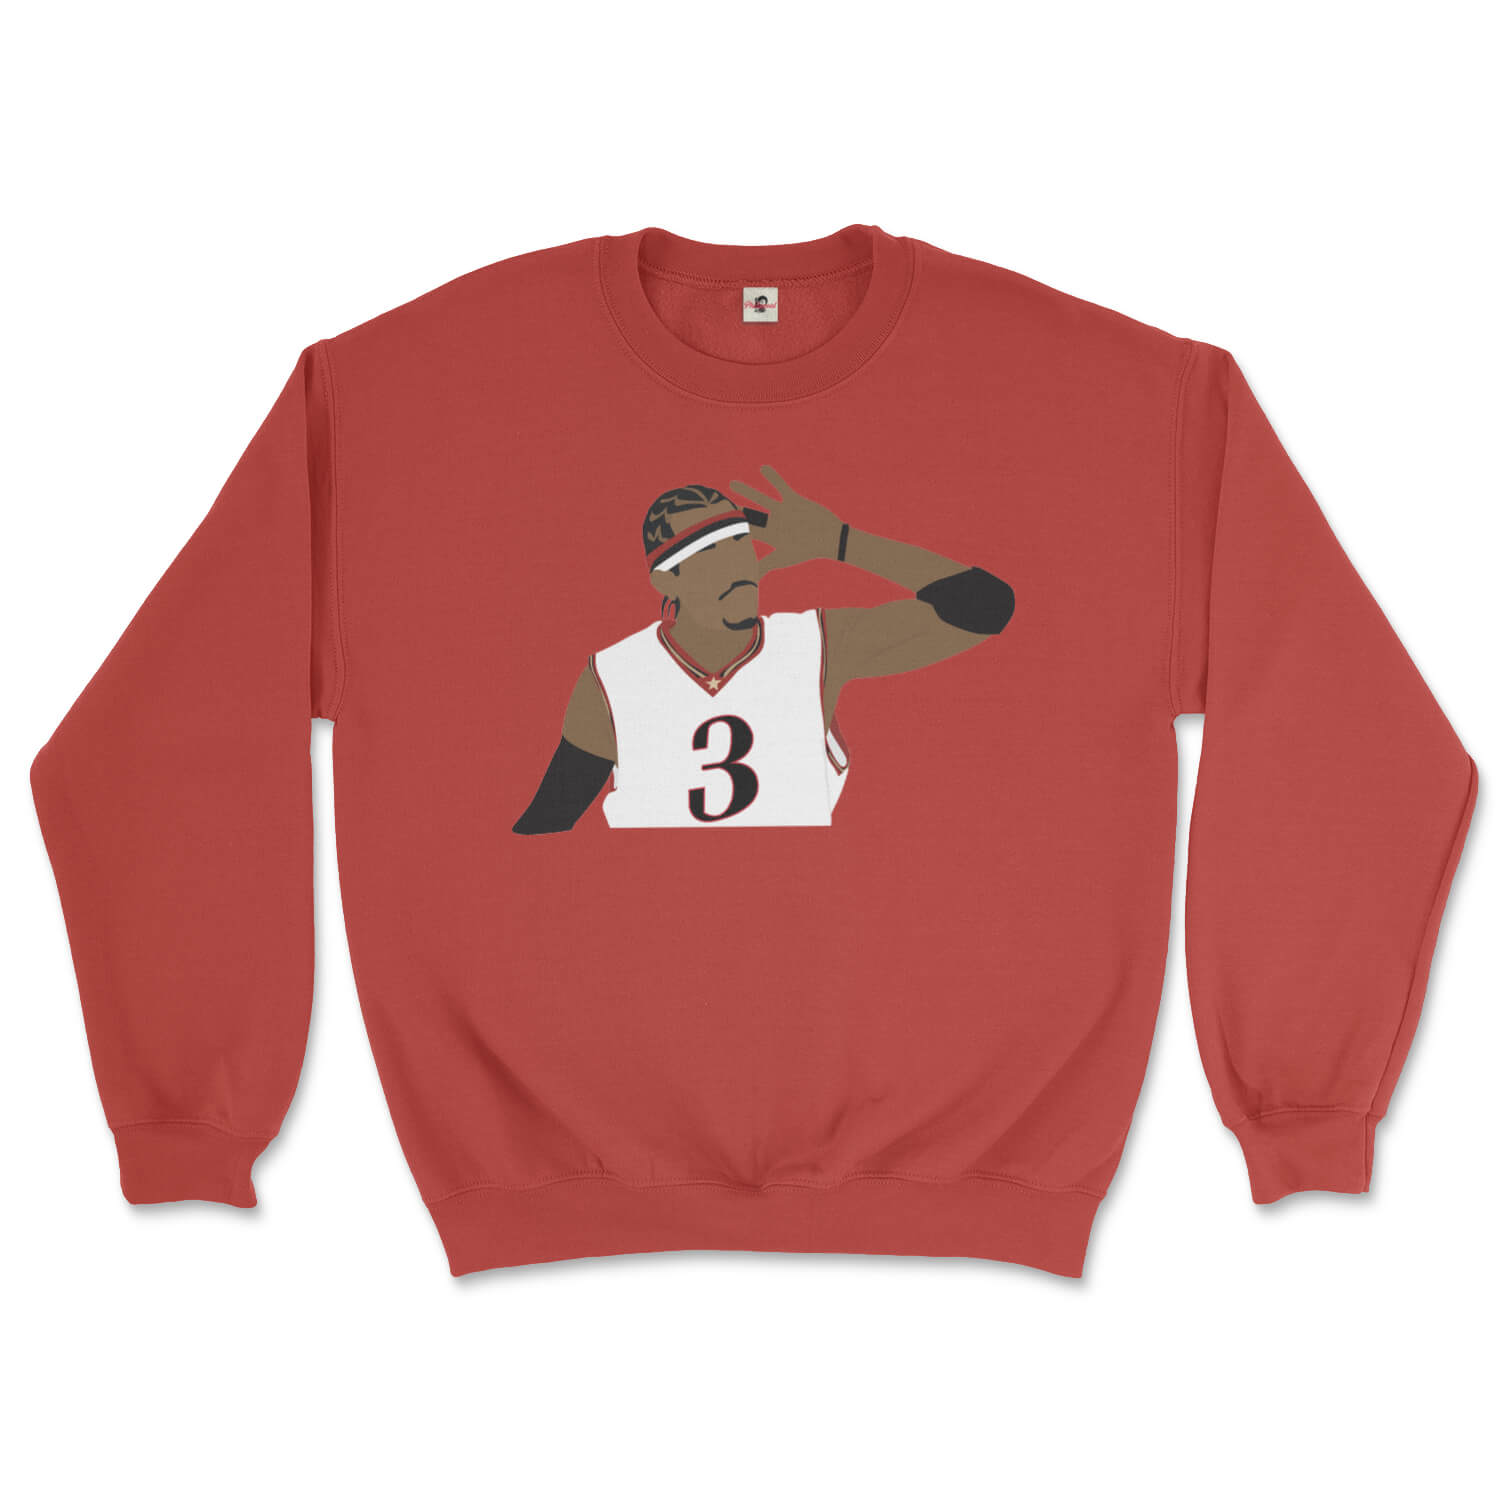 Philadelphia 76ers Allen Iverson the Answer on a red sweatshirt from Phillygoat